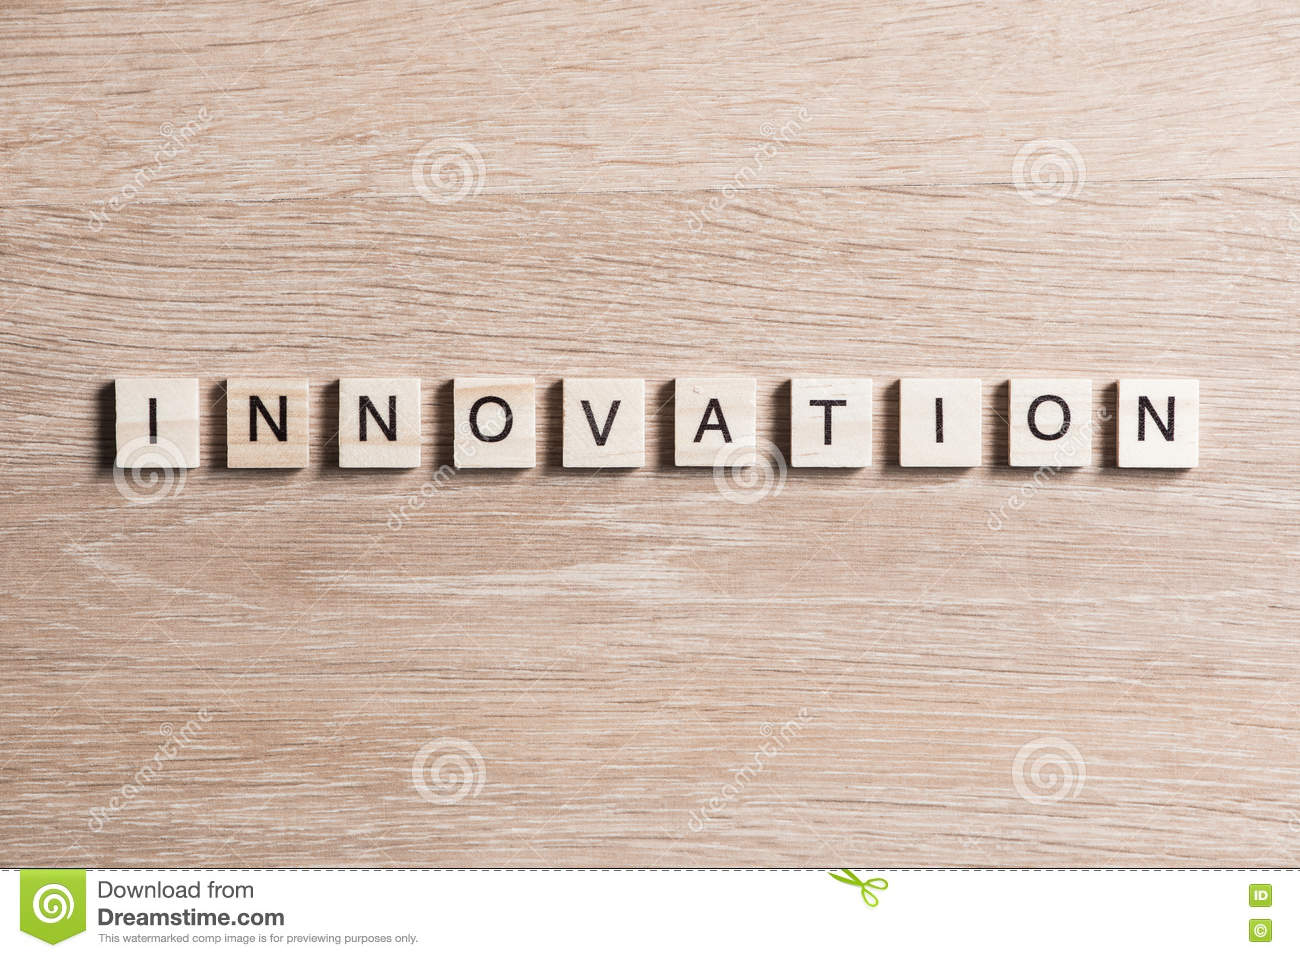 Innovation Scrabble Word Stock Photo Image Of Policy 79746520